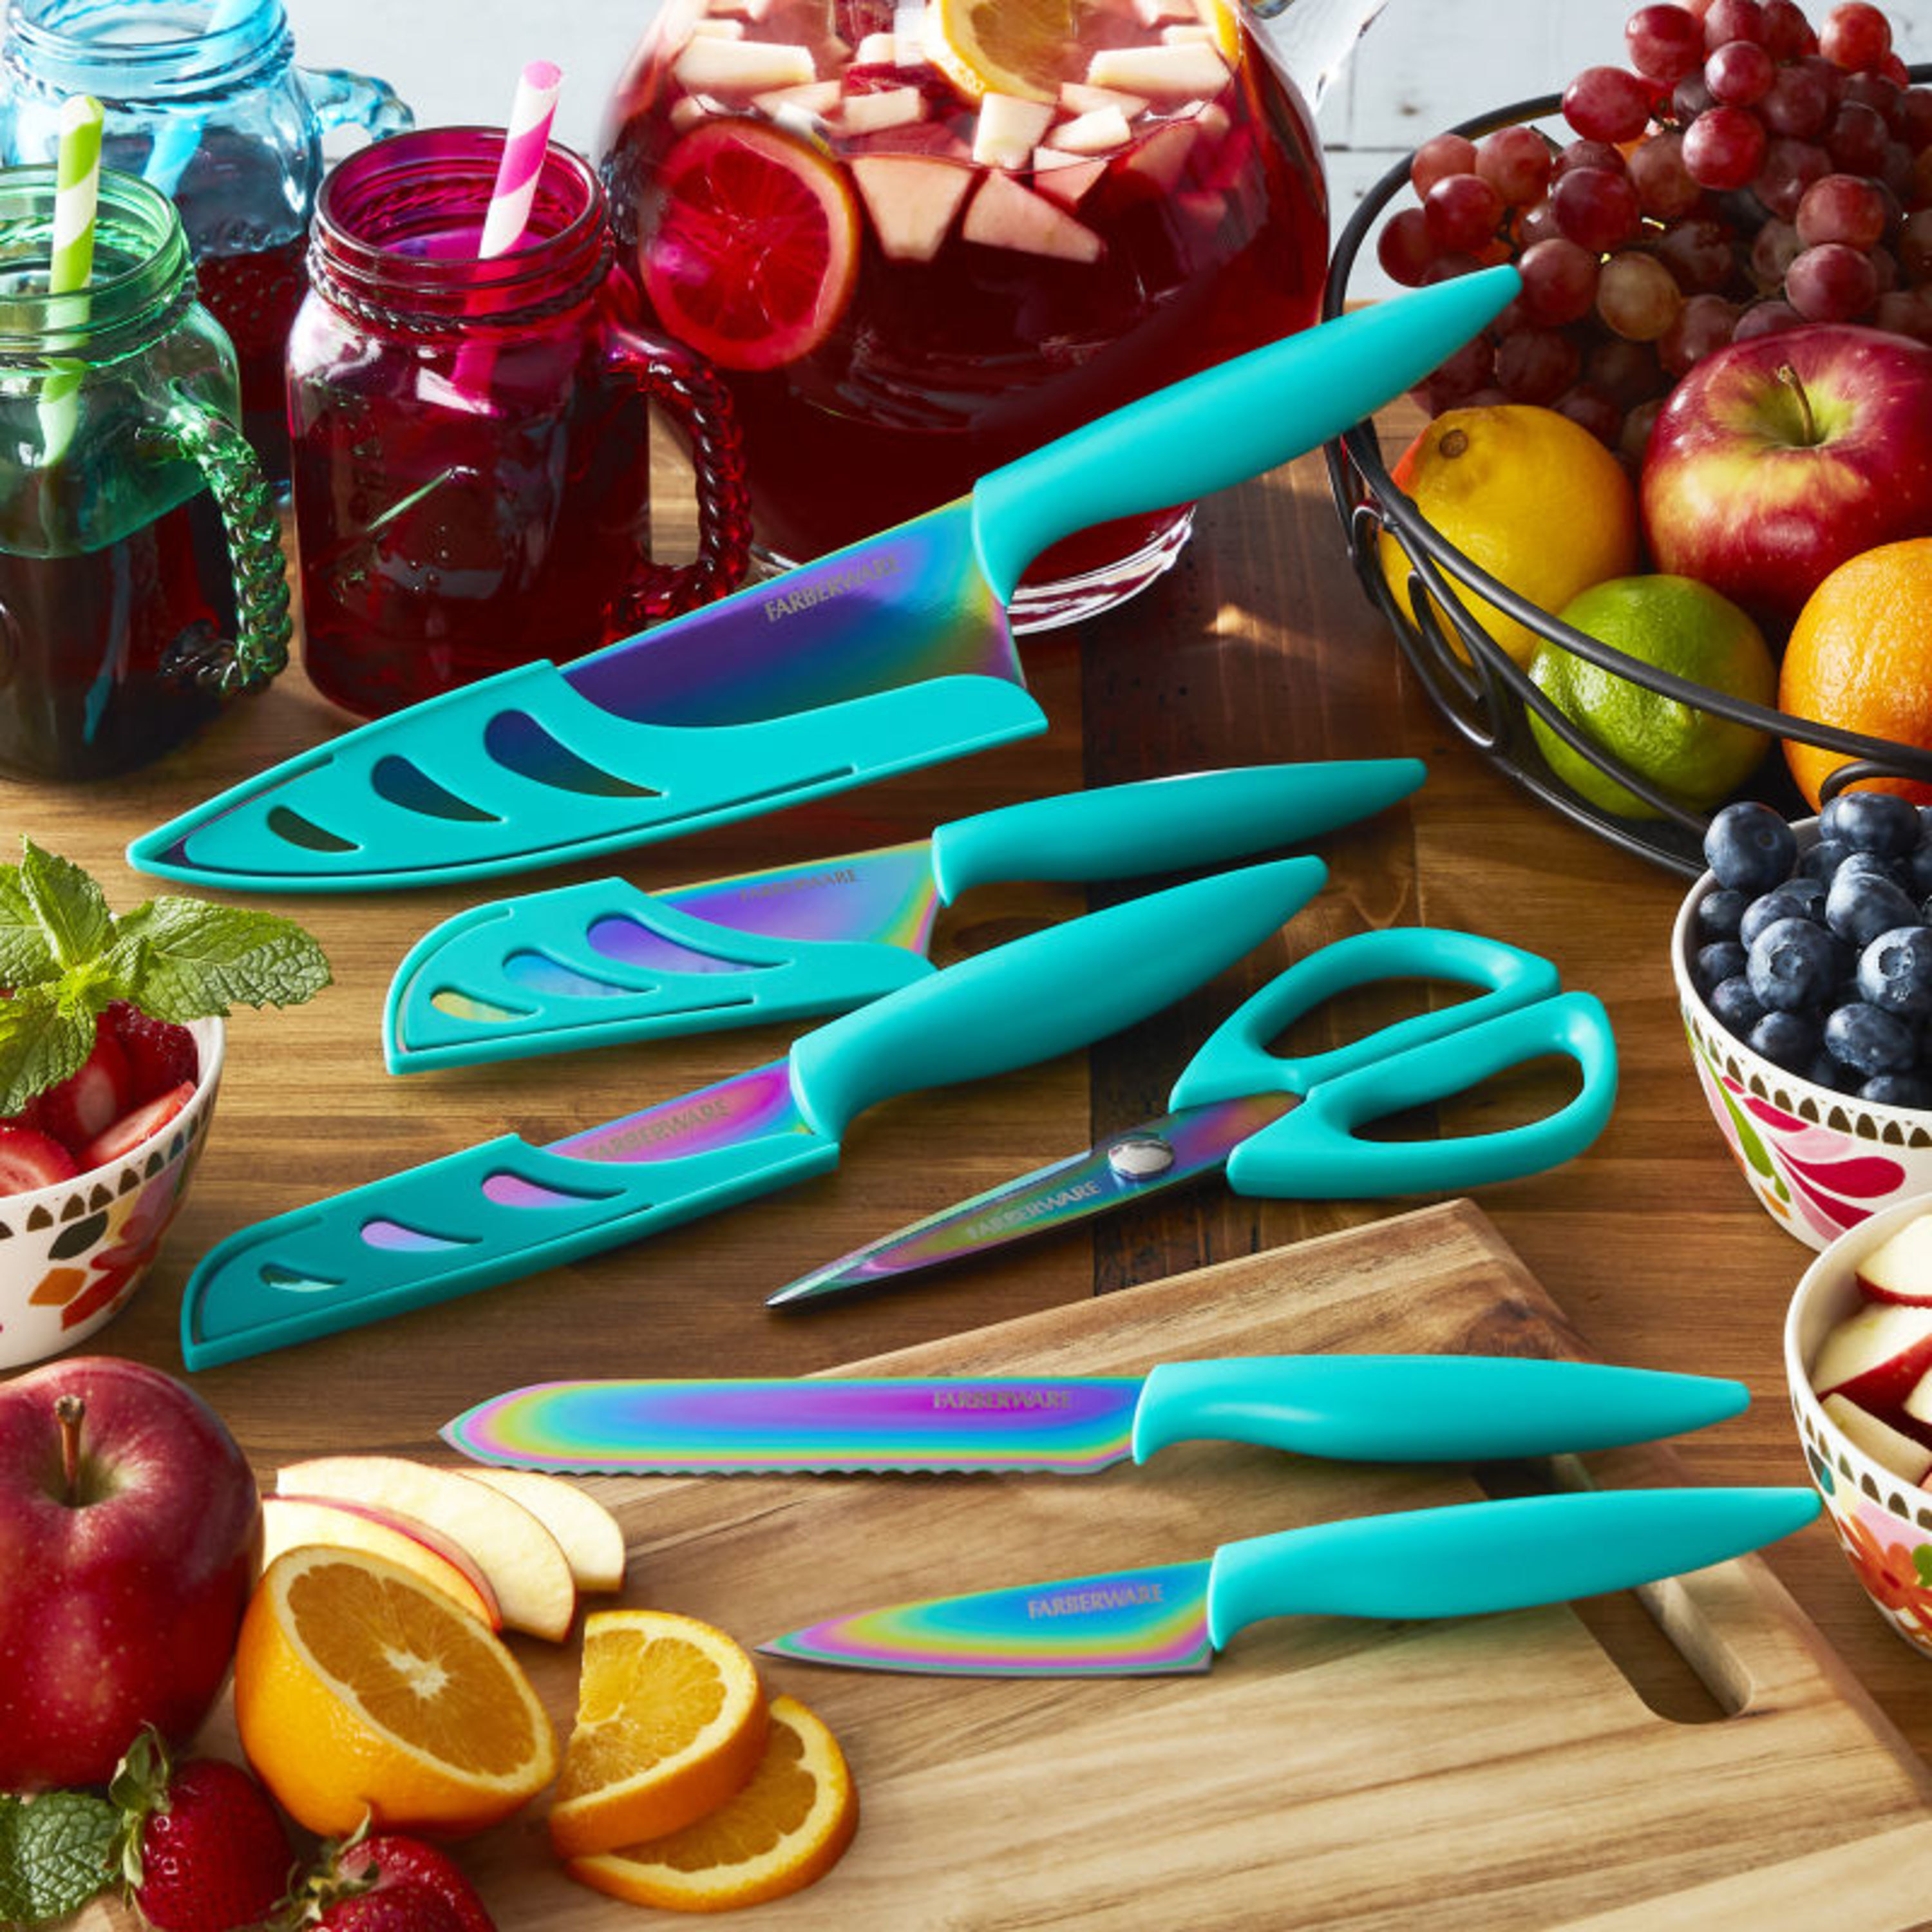 rainbow knives styled with food